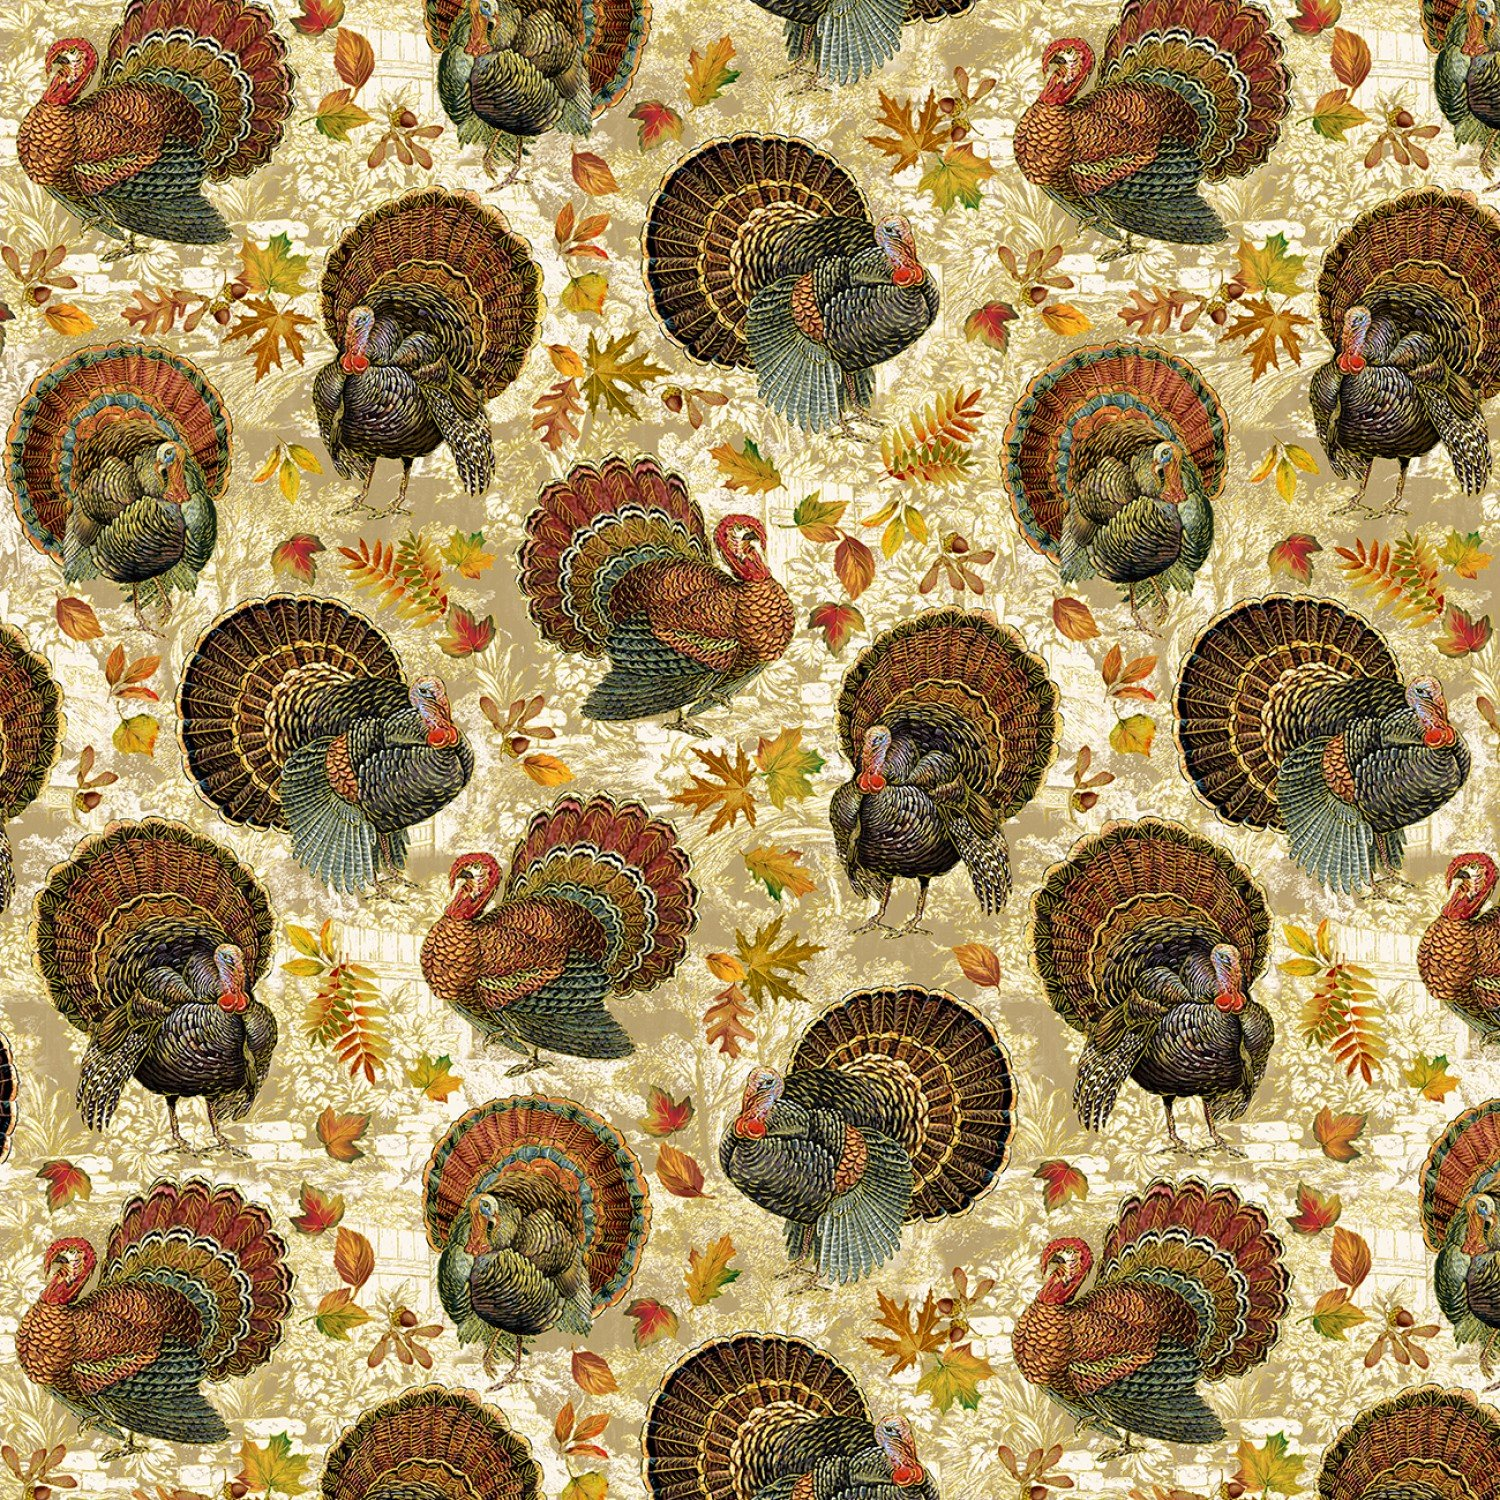 HARVEST-CM7658 MULTI Metallic Harvest Turkeys Gather Here Timeless Treasures